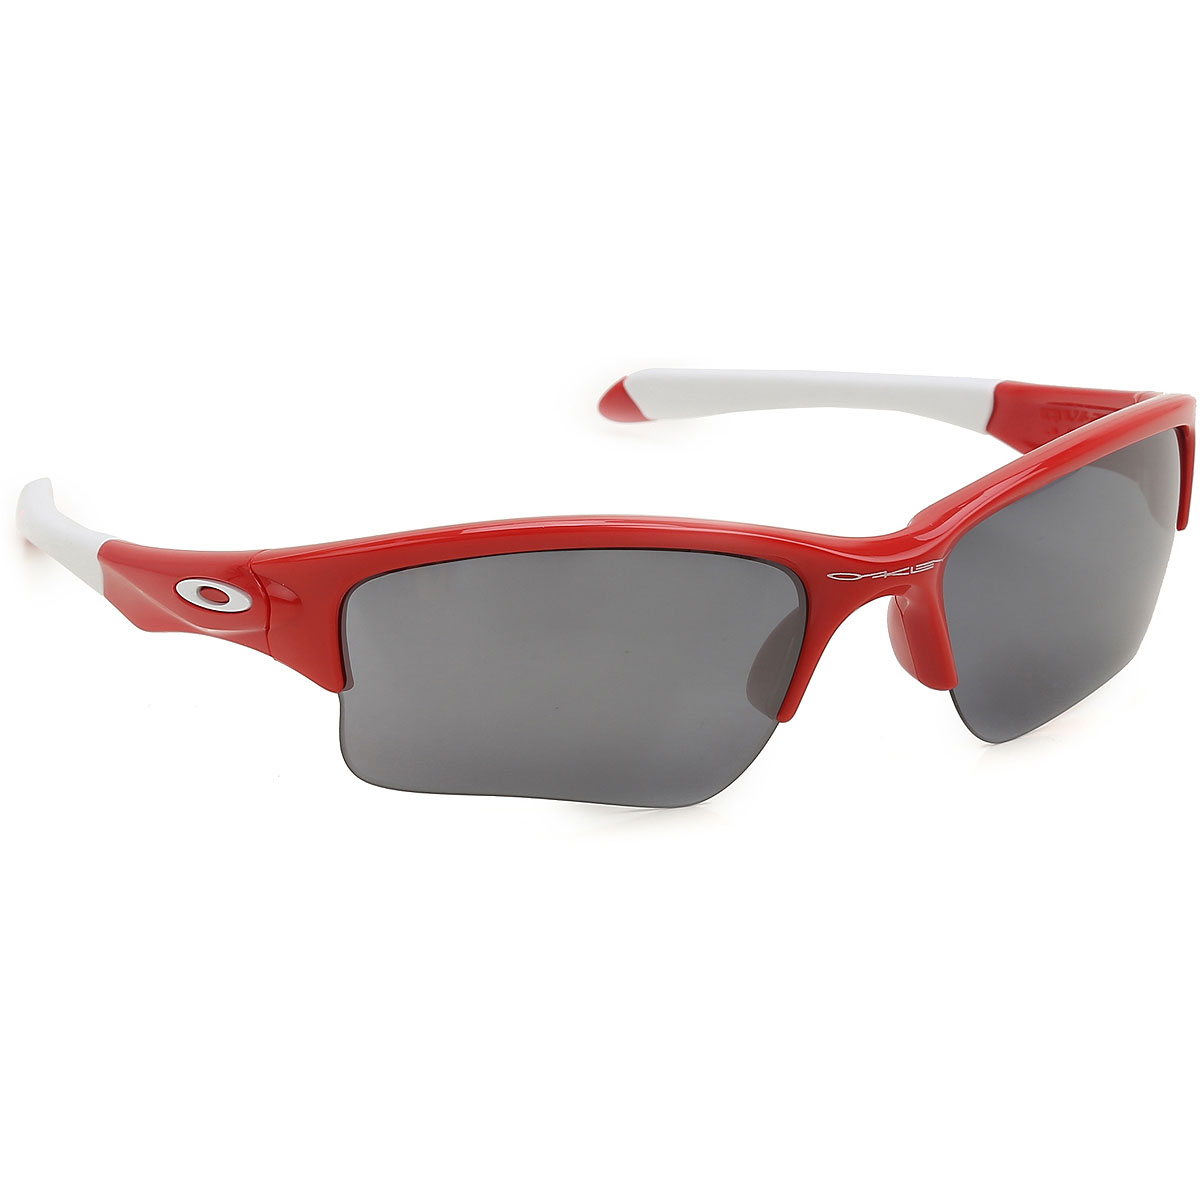 Oakley Kids Sunglasses for Boys On Sale in Outlet, Red, 2019